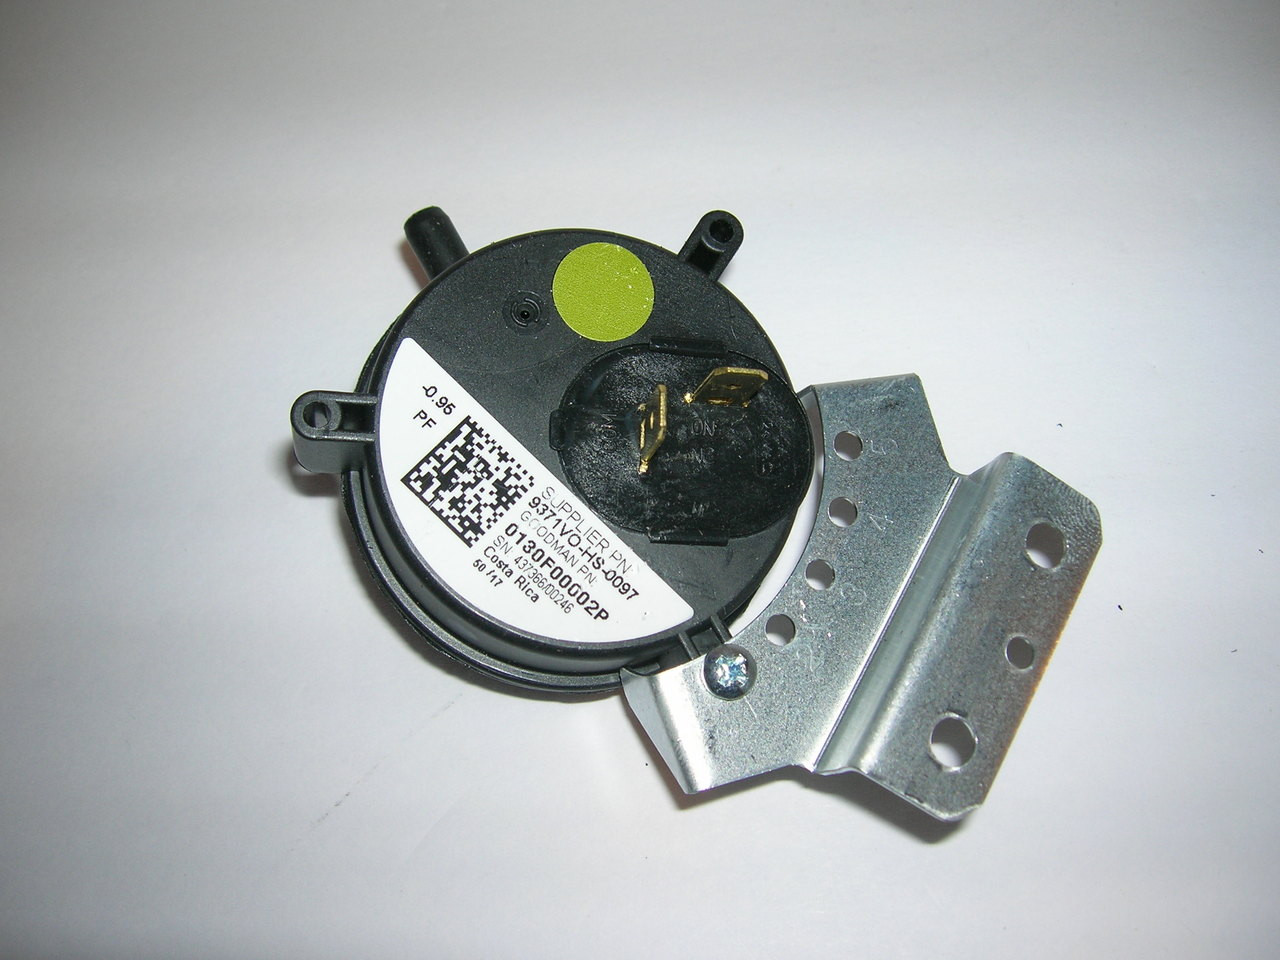 Goodman Furnace Vent Air Pressure Switch Replacement for Part # 0130F00001P 1.20 WC Universal